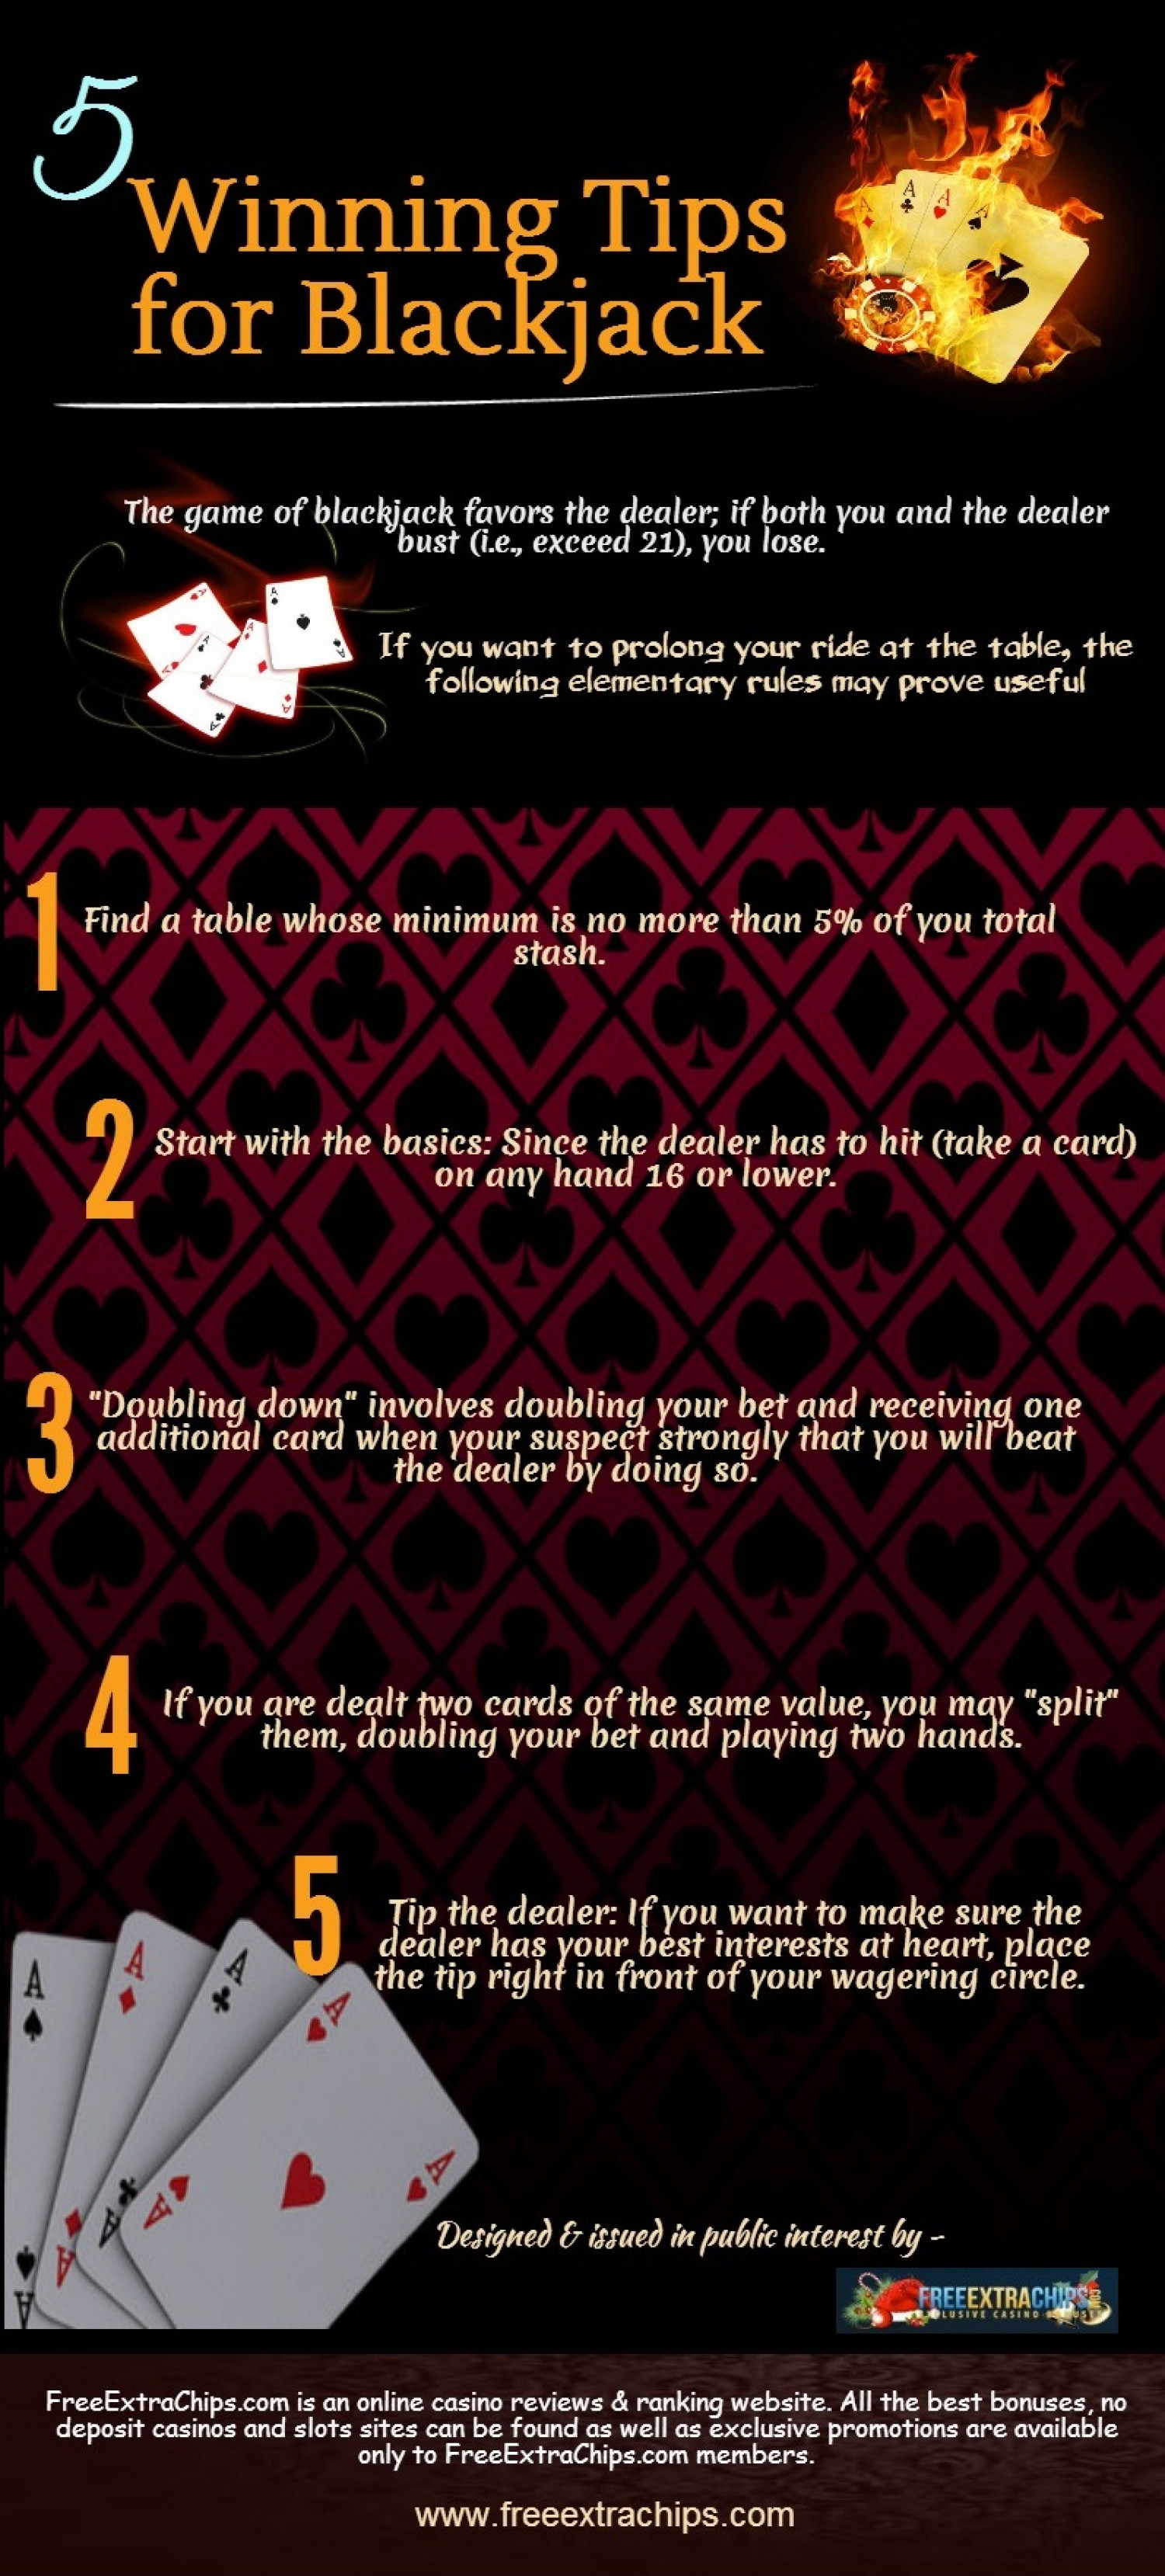 5 Winning Tips for Blackjack  Infographic